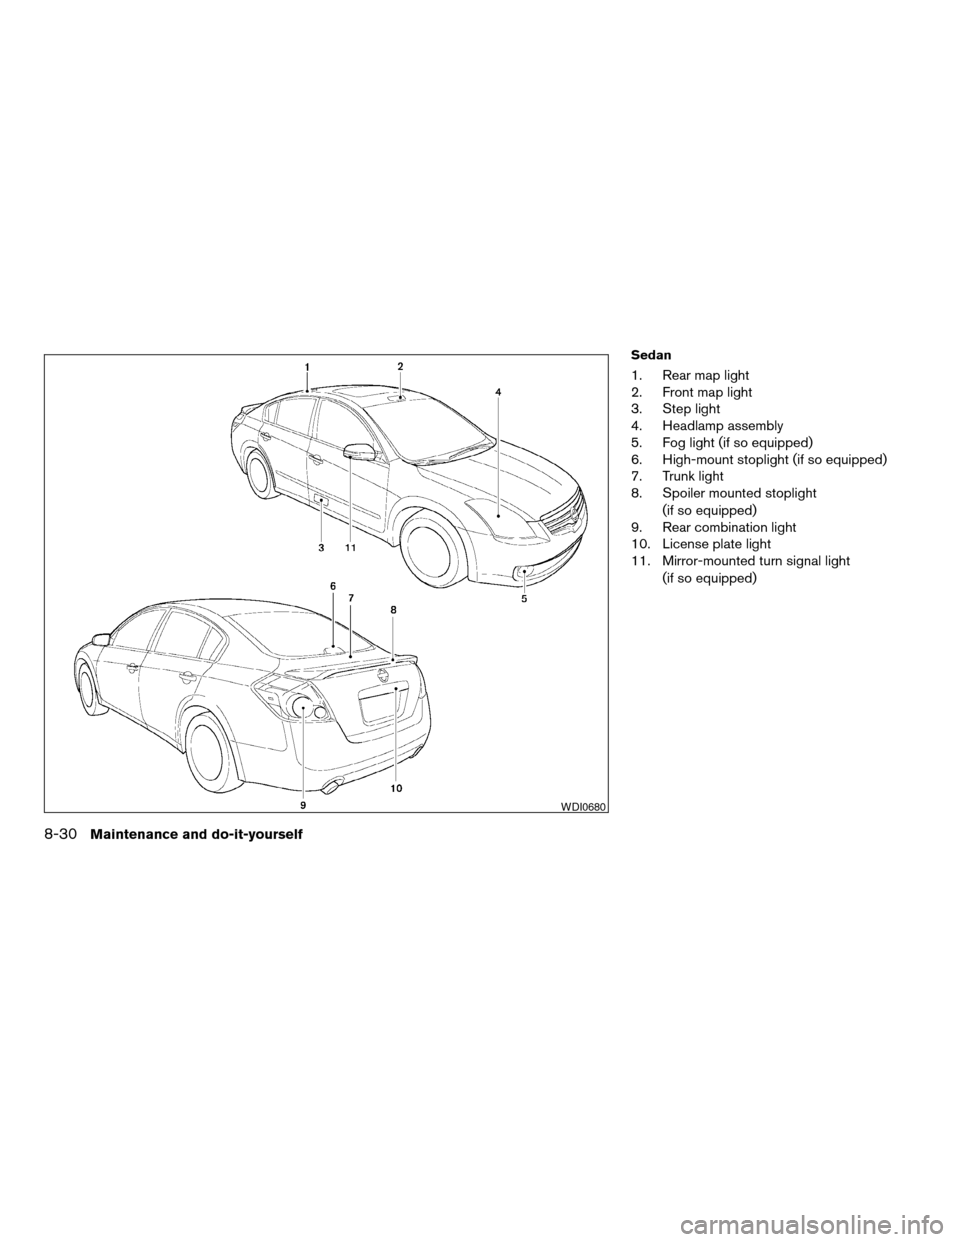 NISSAN ALTIMA COUPE 2009 D32 / 4.G Owners Manual, Page 320